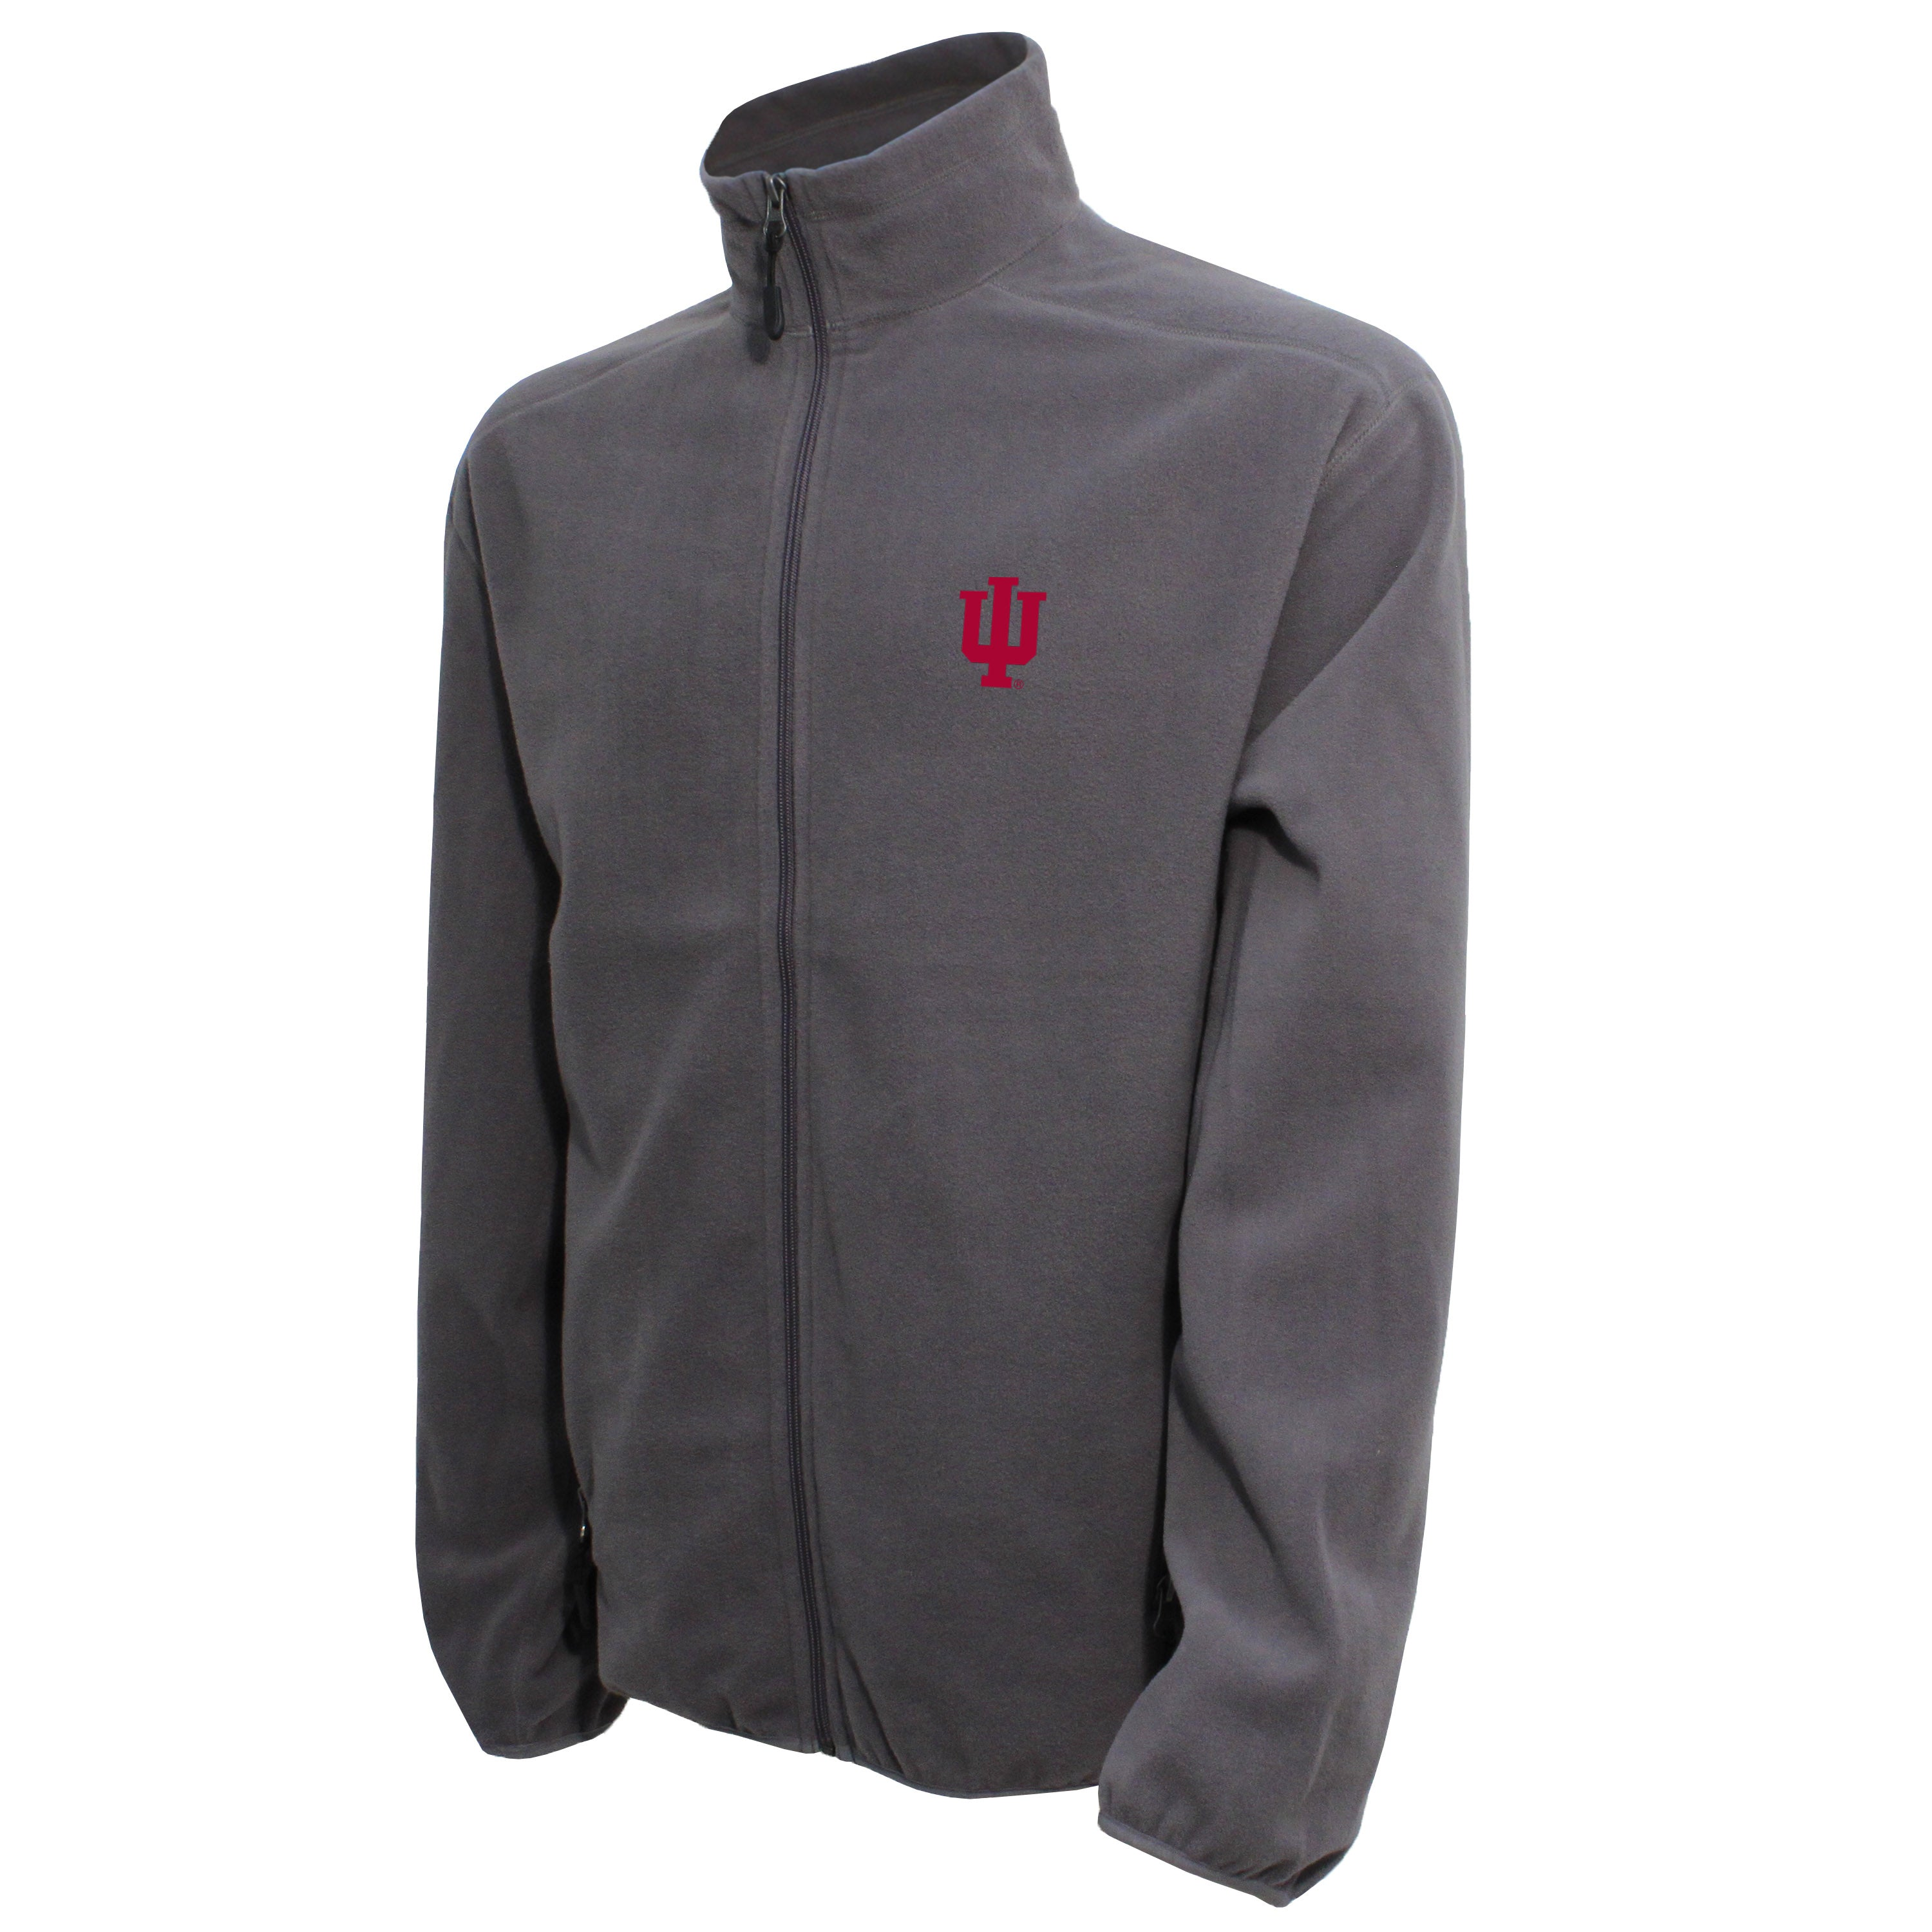 Vesi Indiana Men's Graphite Full Zip Jacket